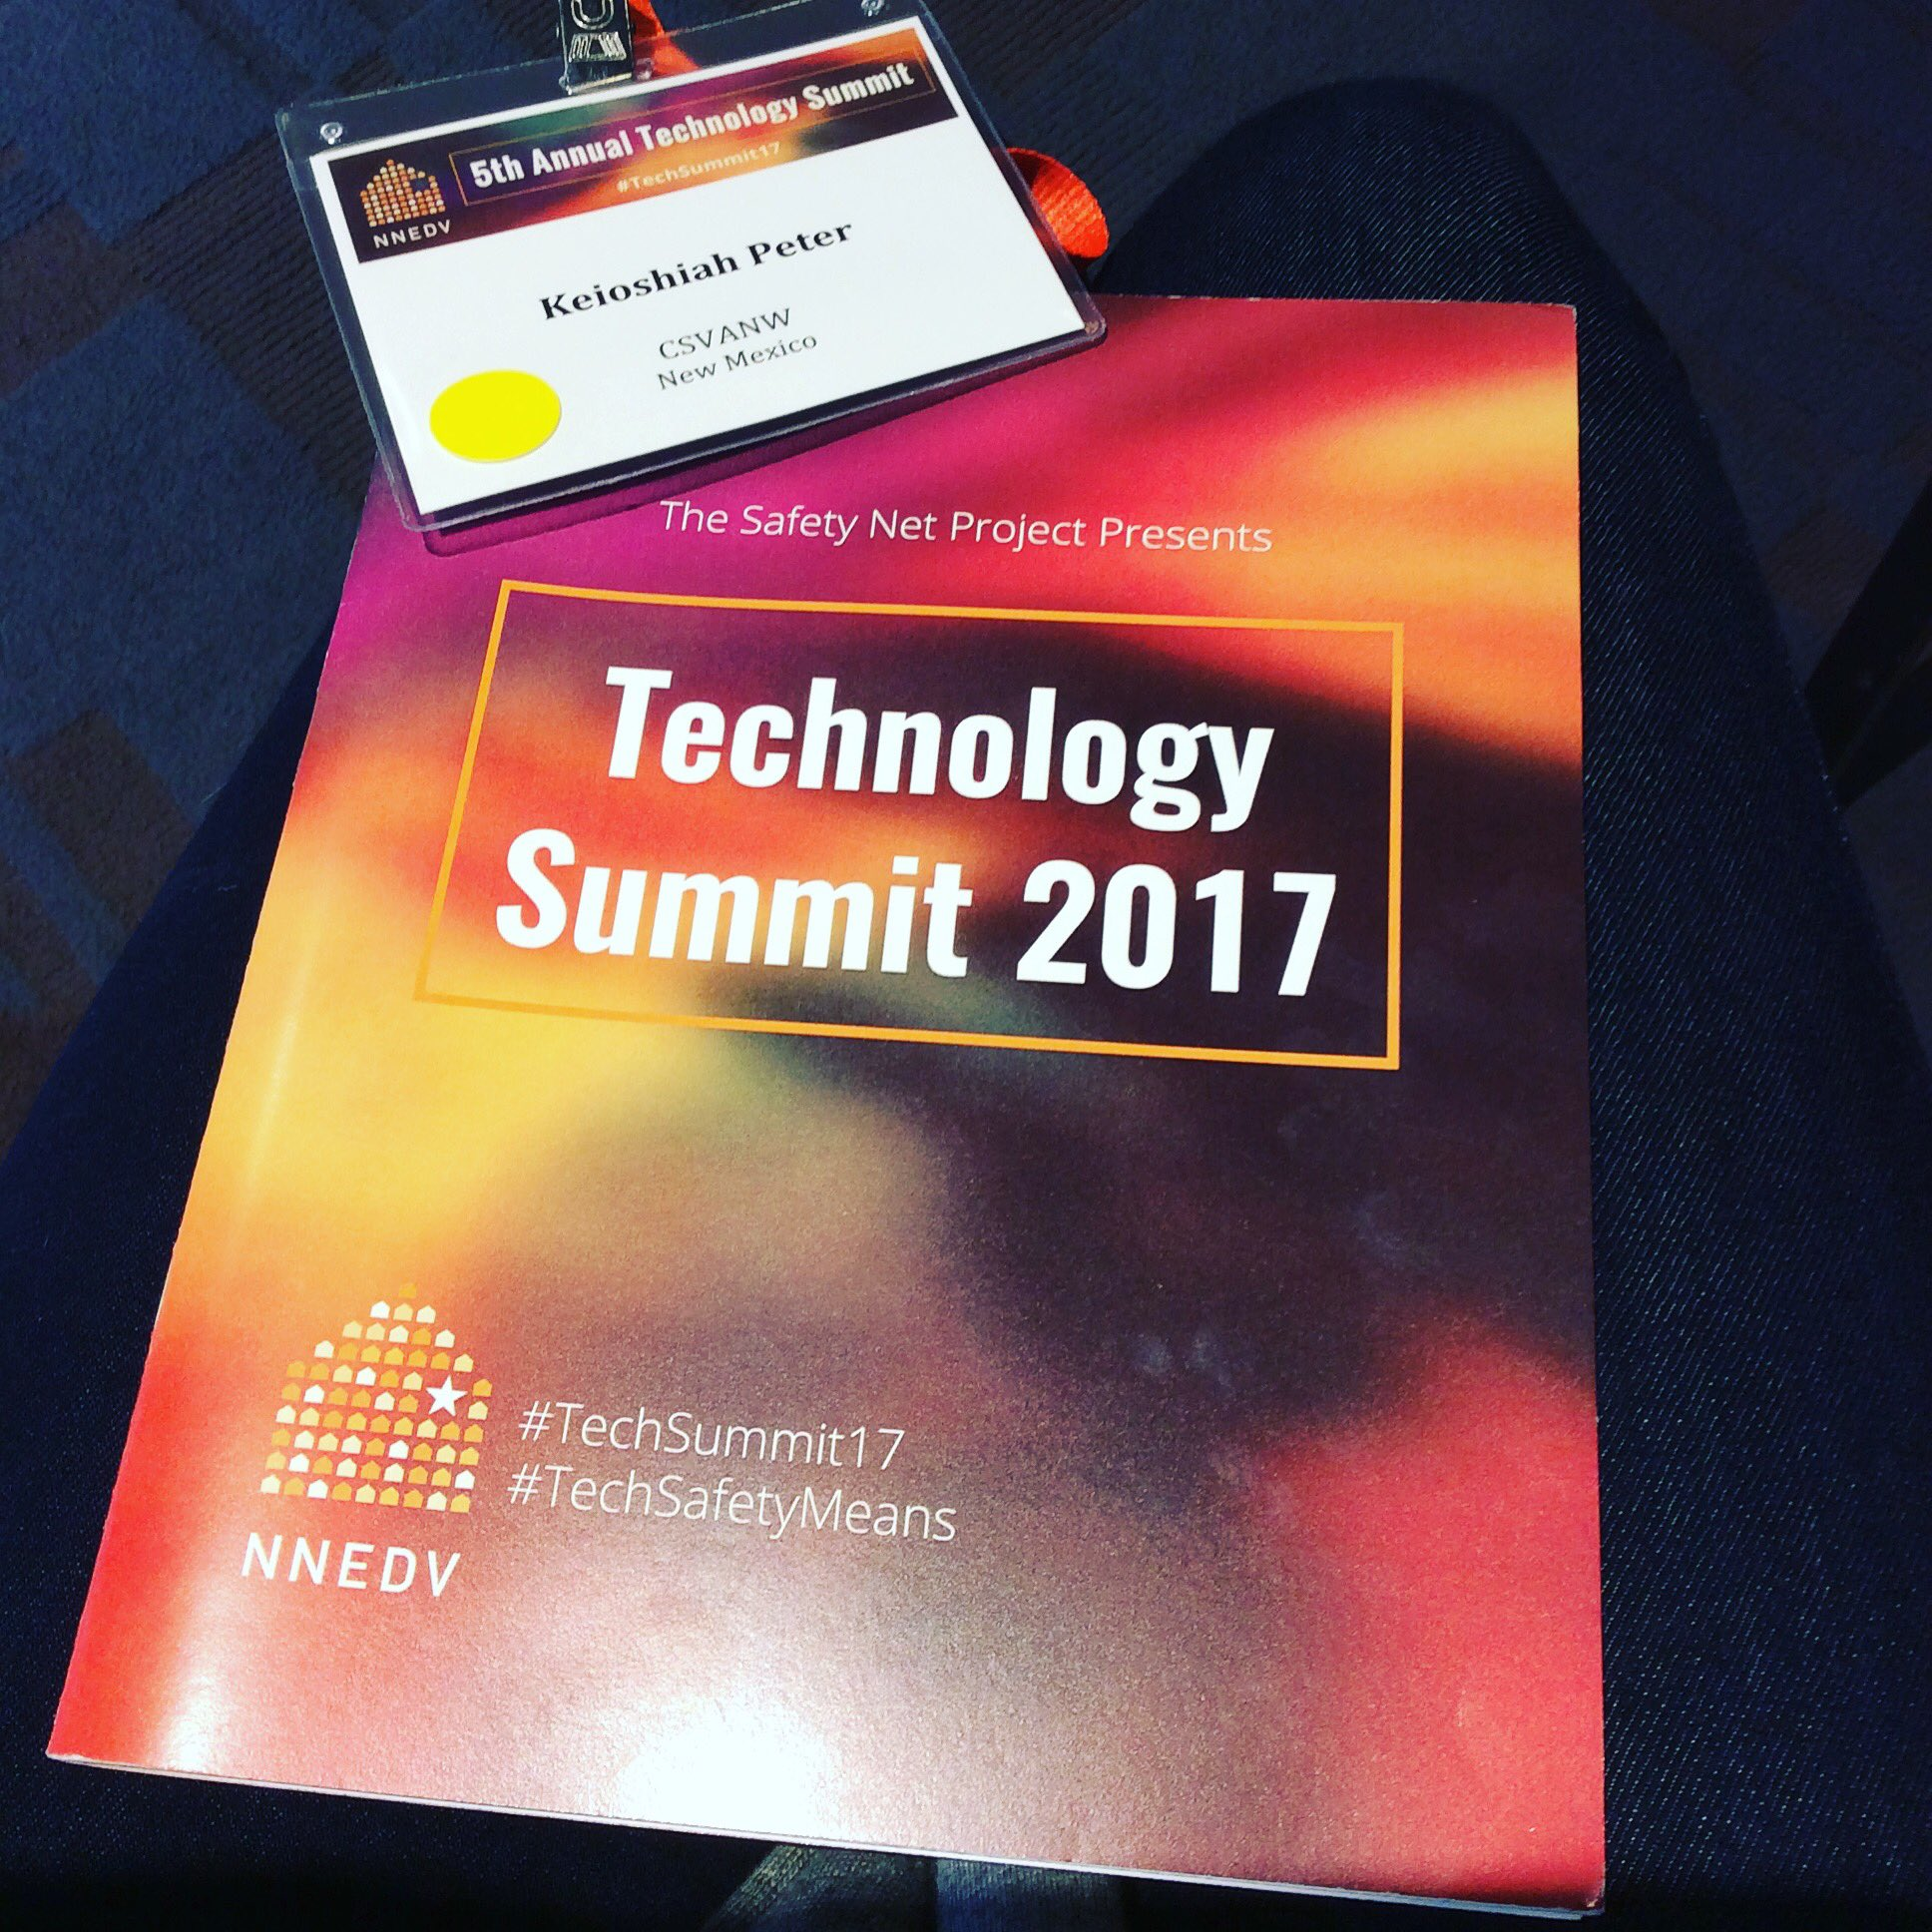 Our Native Youth Coordinator, Keioshiah, is at the #TechSummit17 in San Francisco, CA! #CSVANW #CSVANWYouth https://t.co/dCcuADkJtA